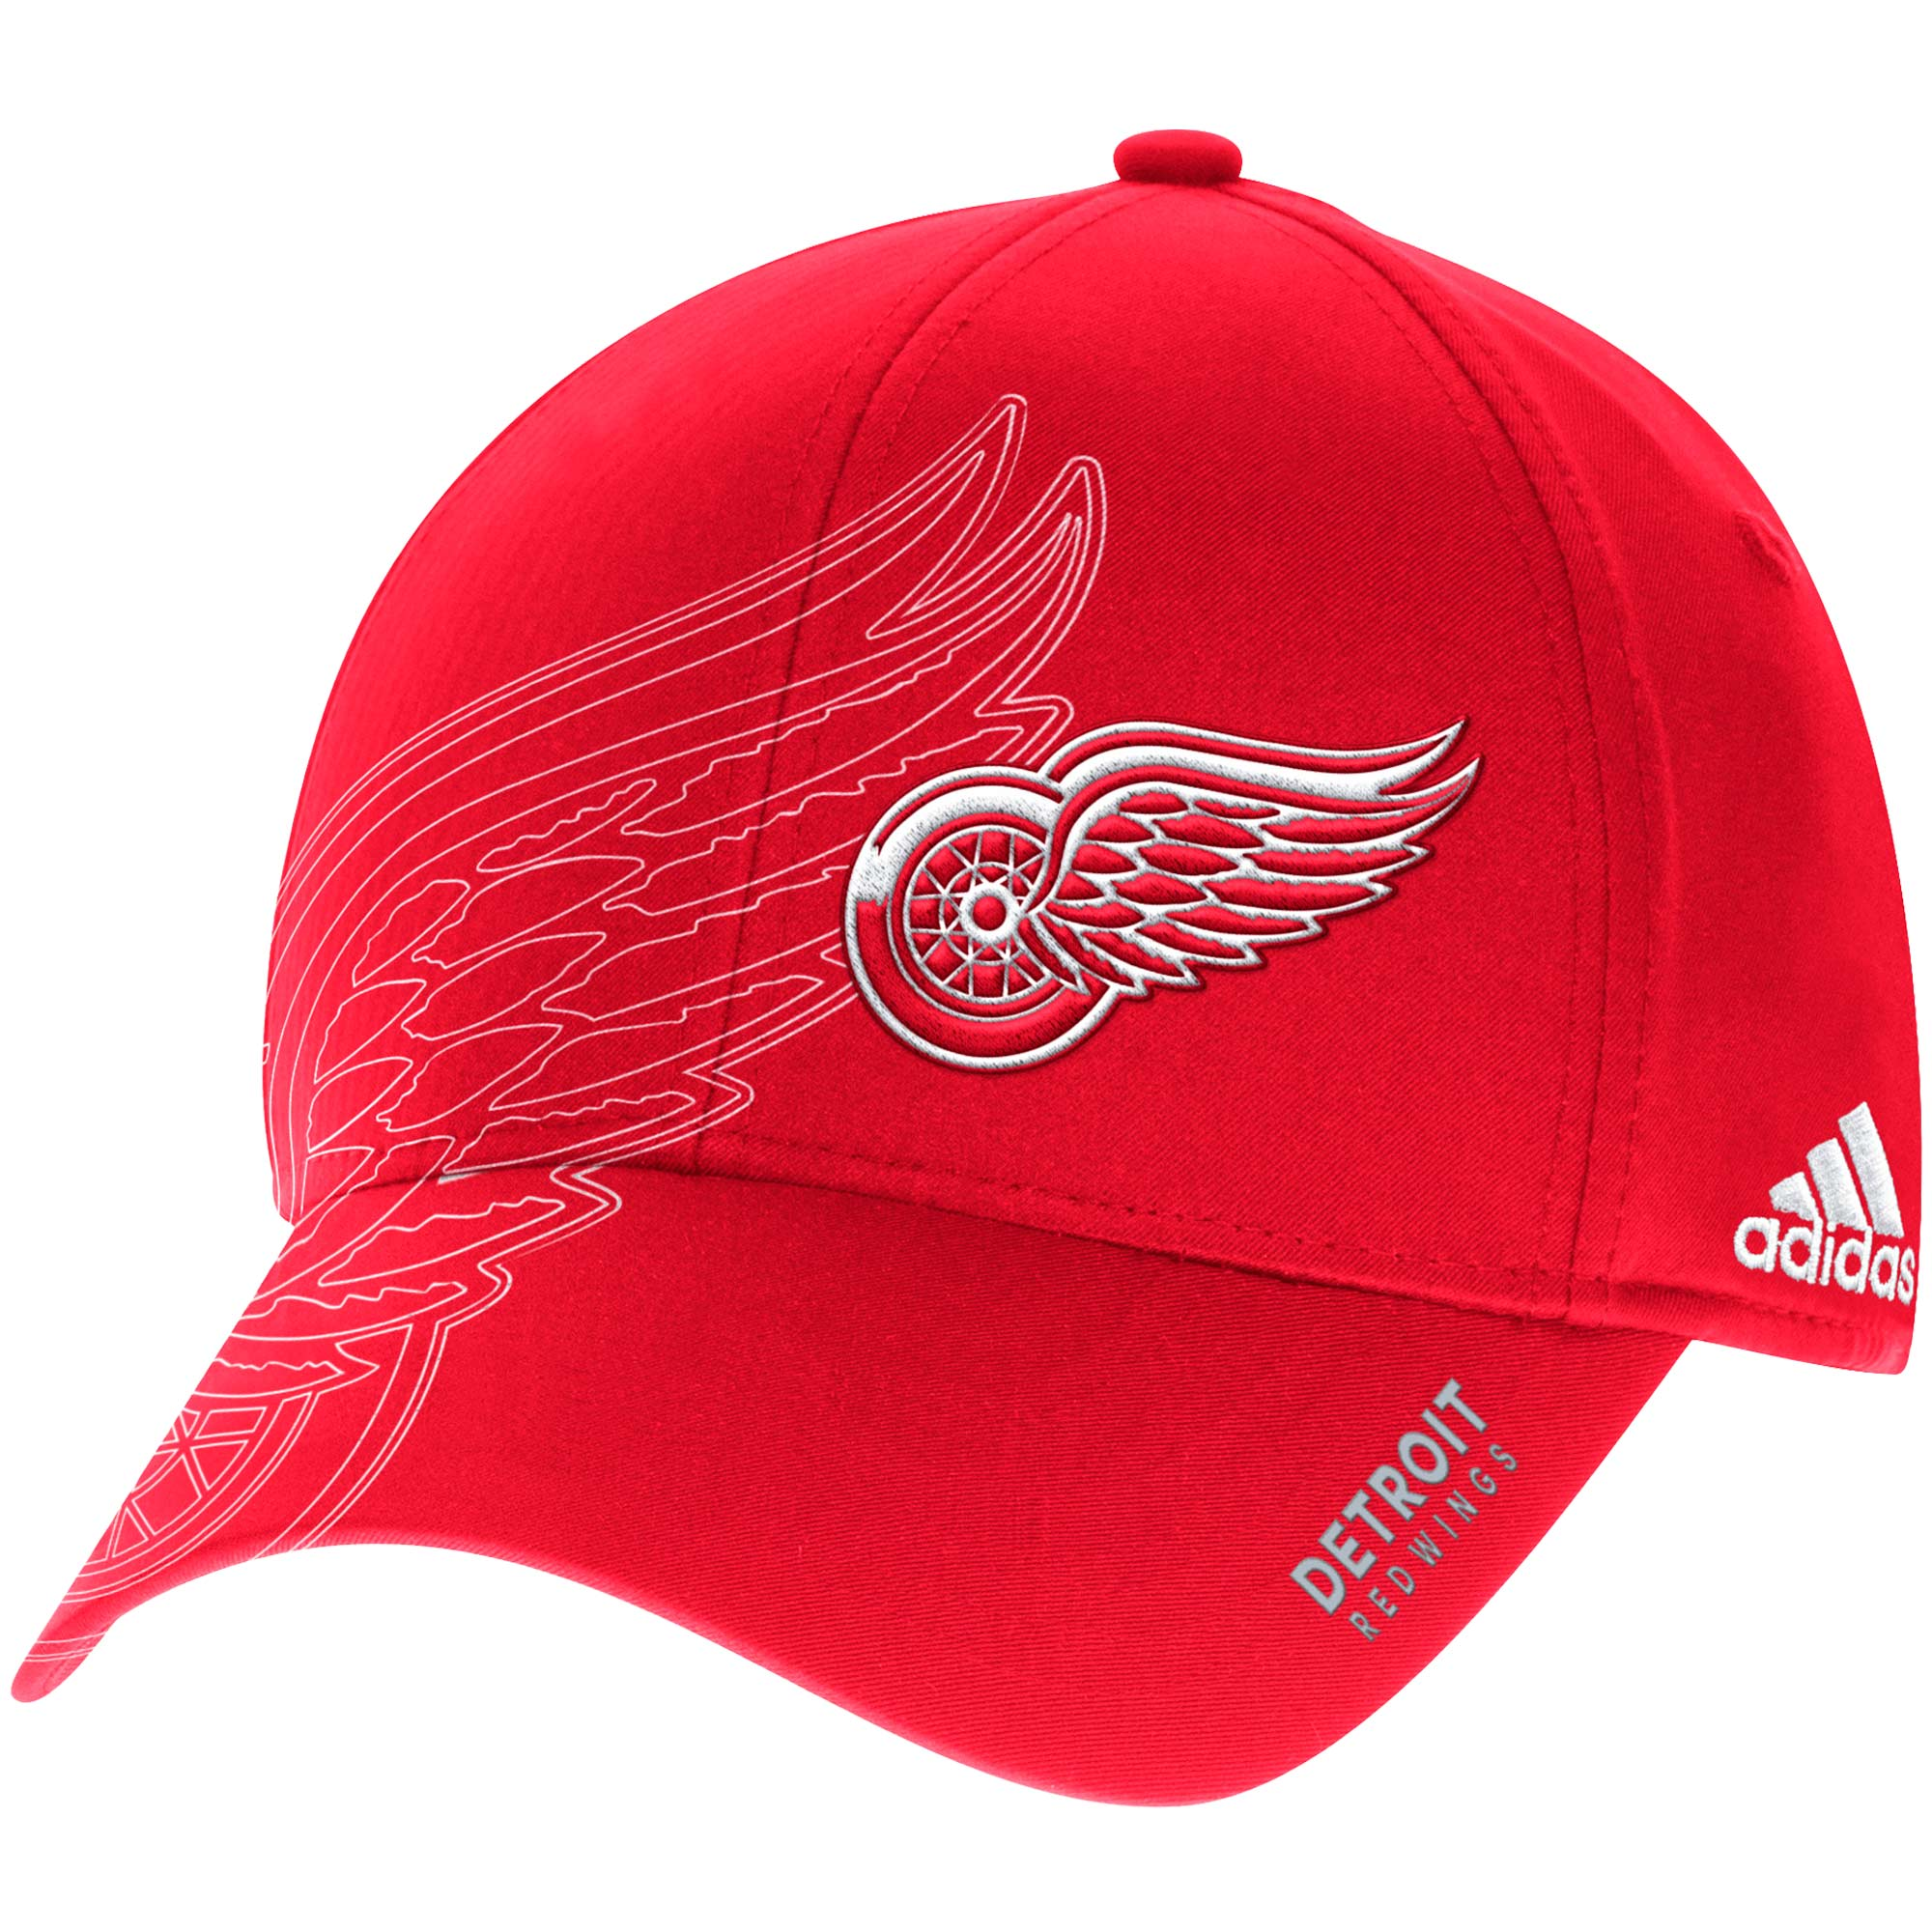 67a91d23214 Adidas Dětská kšiltovka Detroit Red Wings NHL Second Season 2017